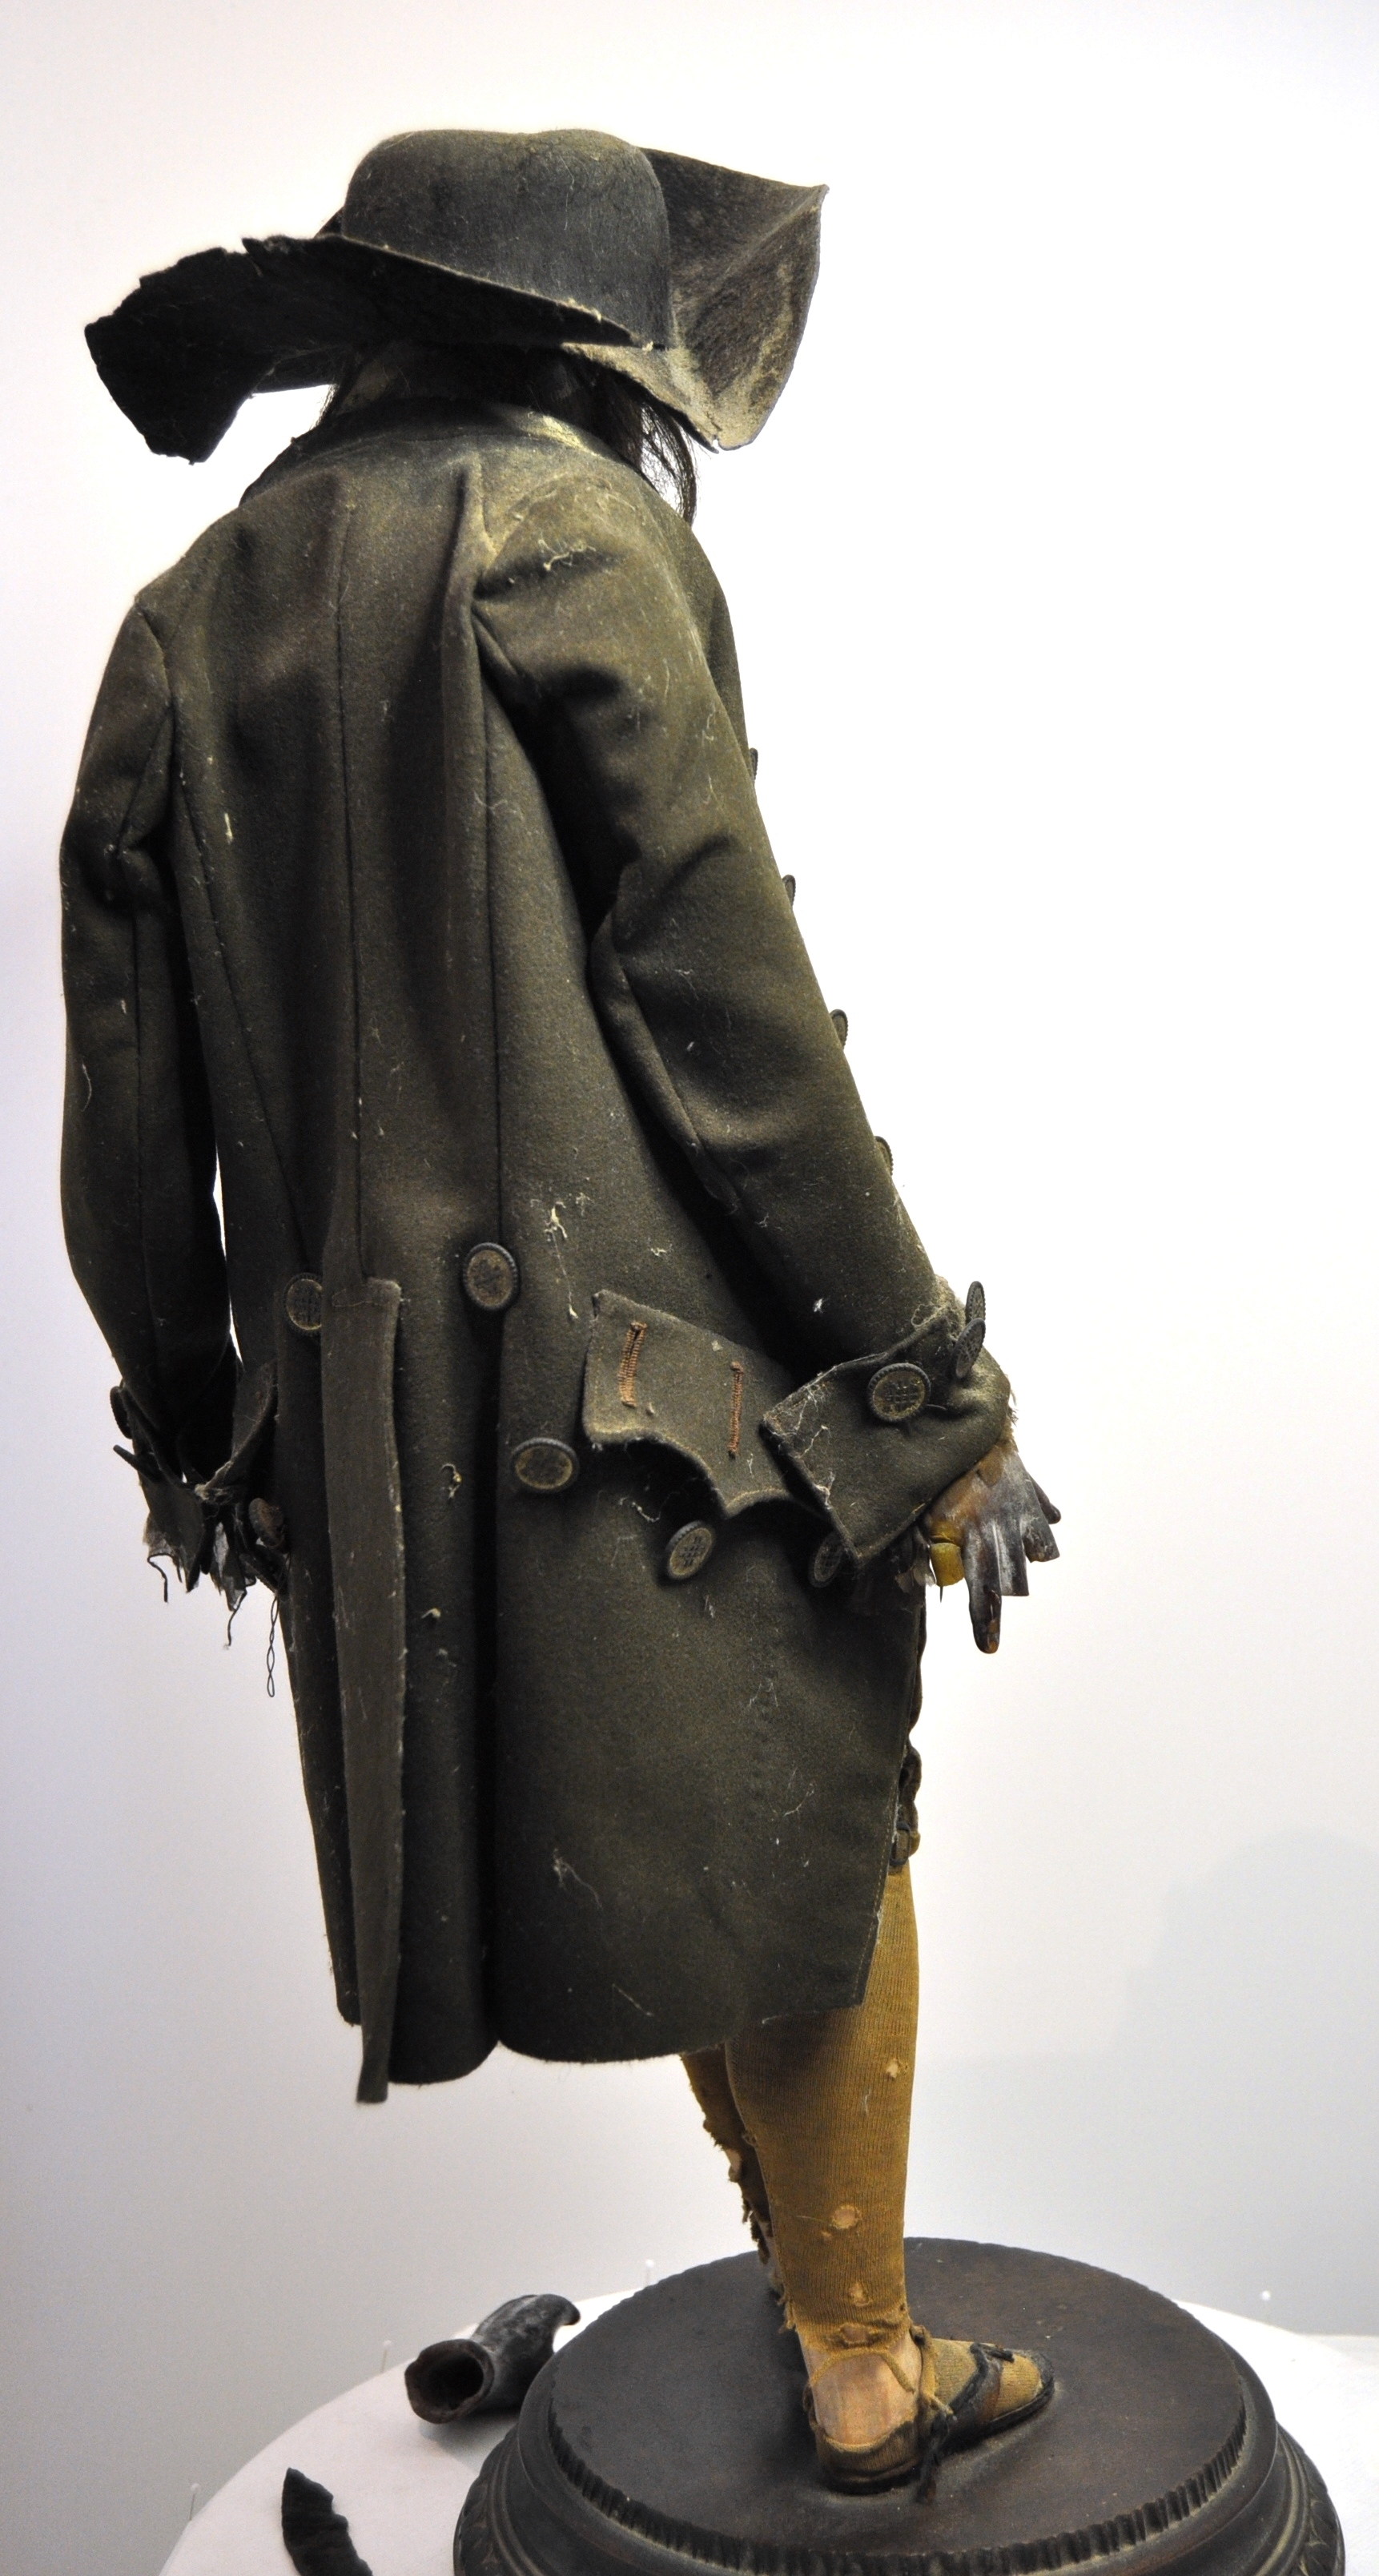 The dressed figure, before conservation